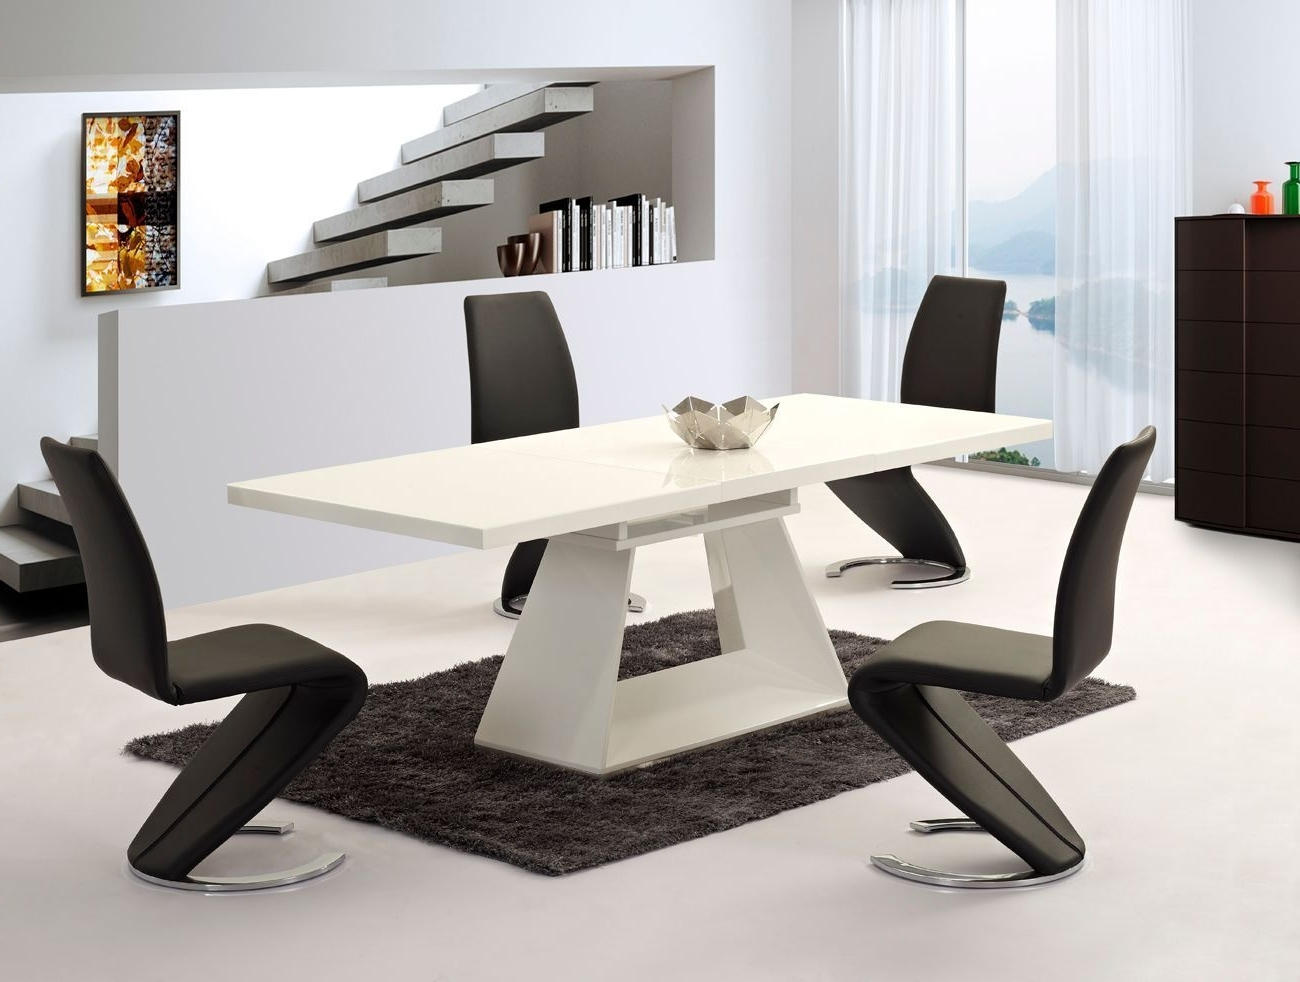 Most Popular Extending White High Gloss Dining Table And 6 Chairs – Homegenies Throughout Black Glass Extending Dining Tables 6 Chairs (View 9 of 25)